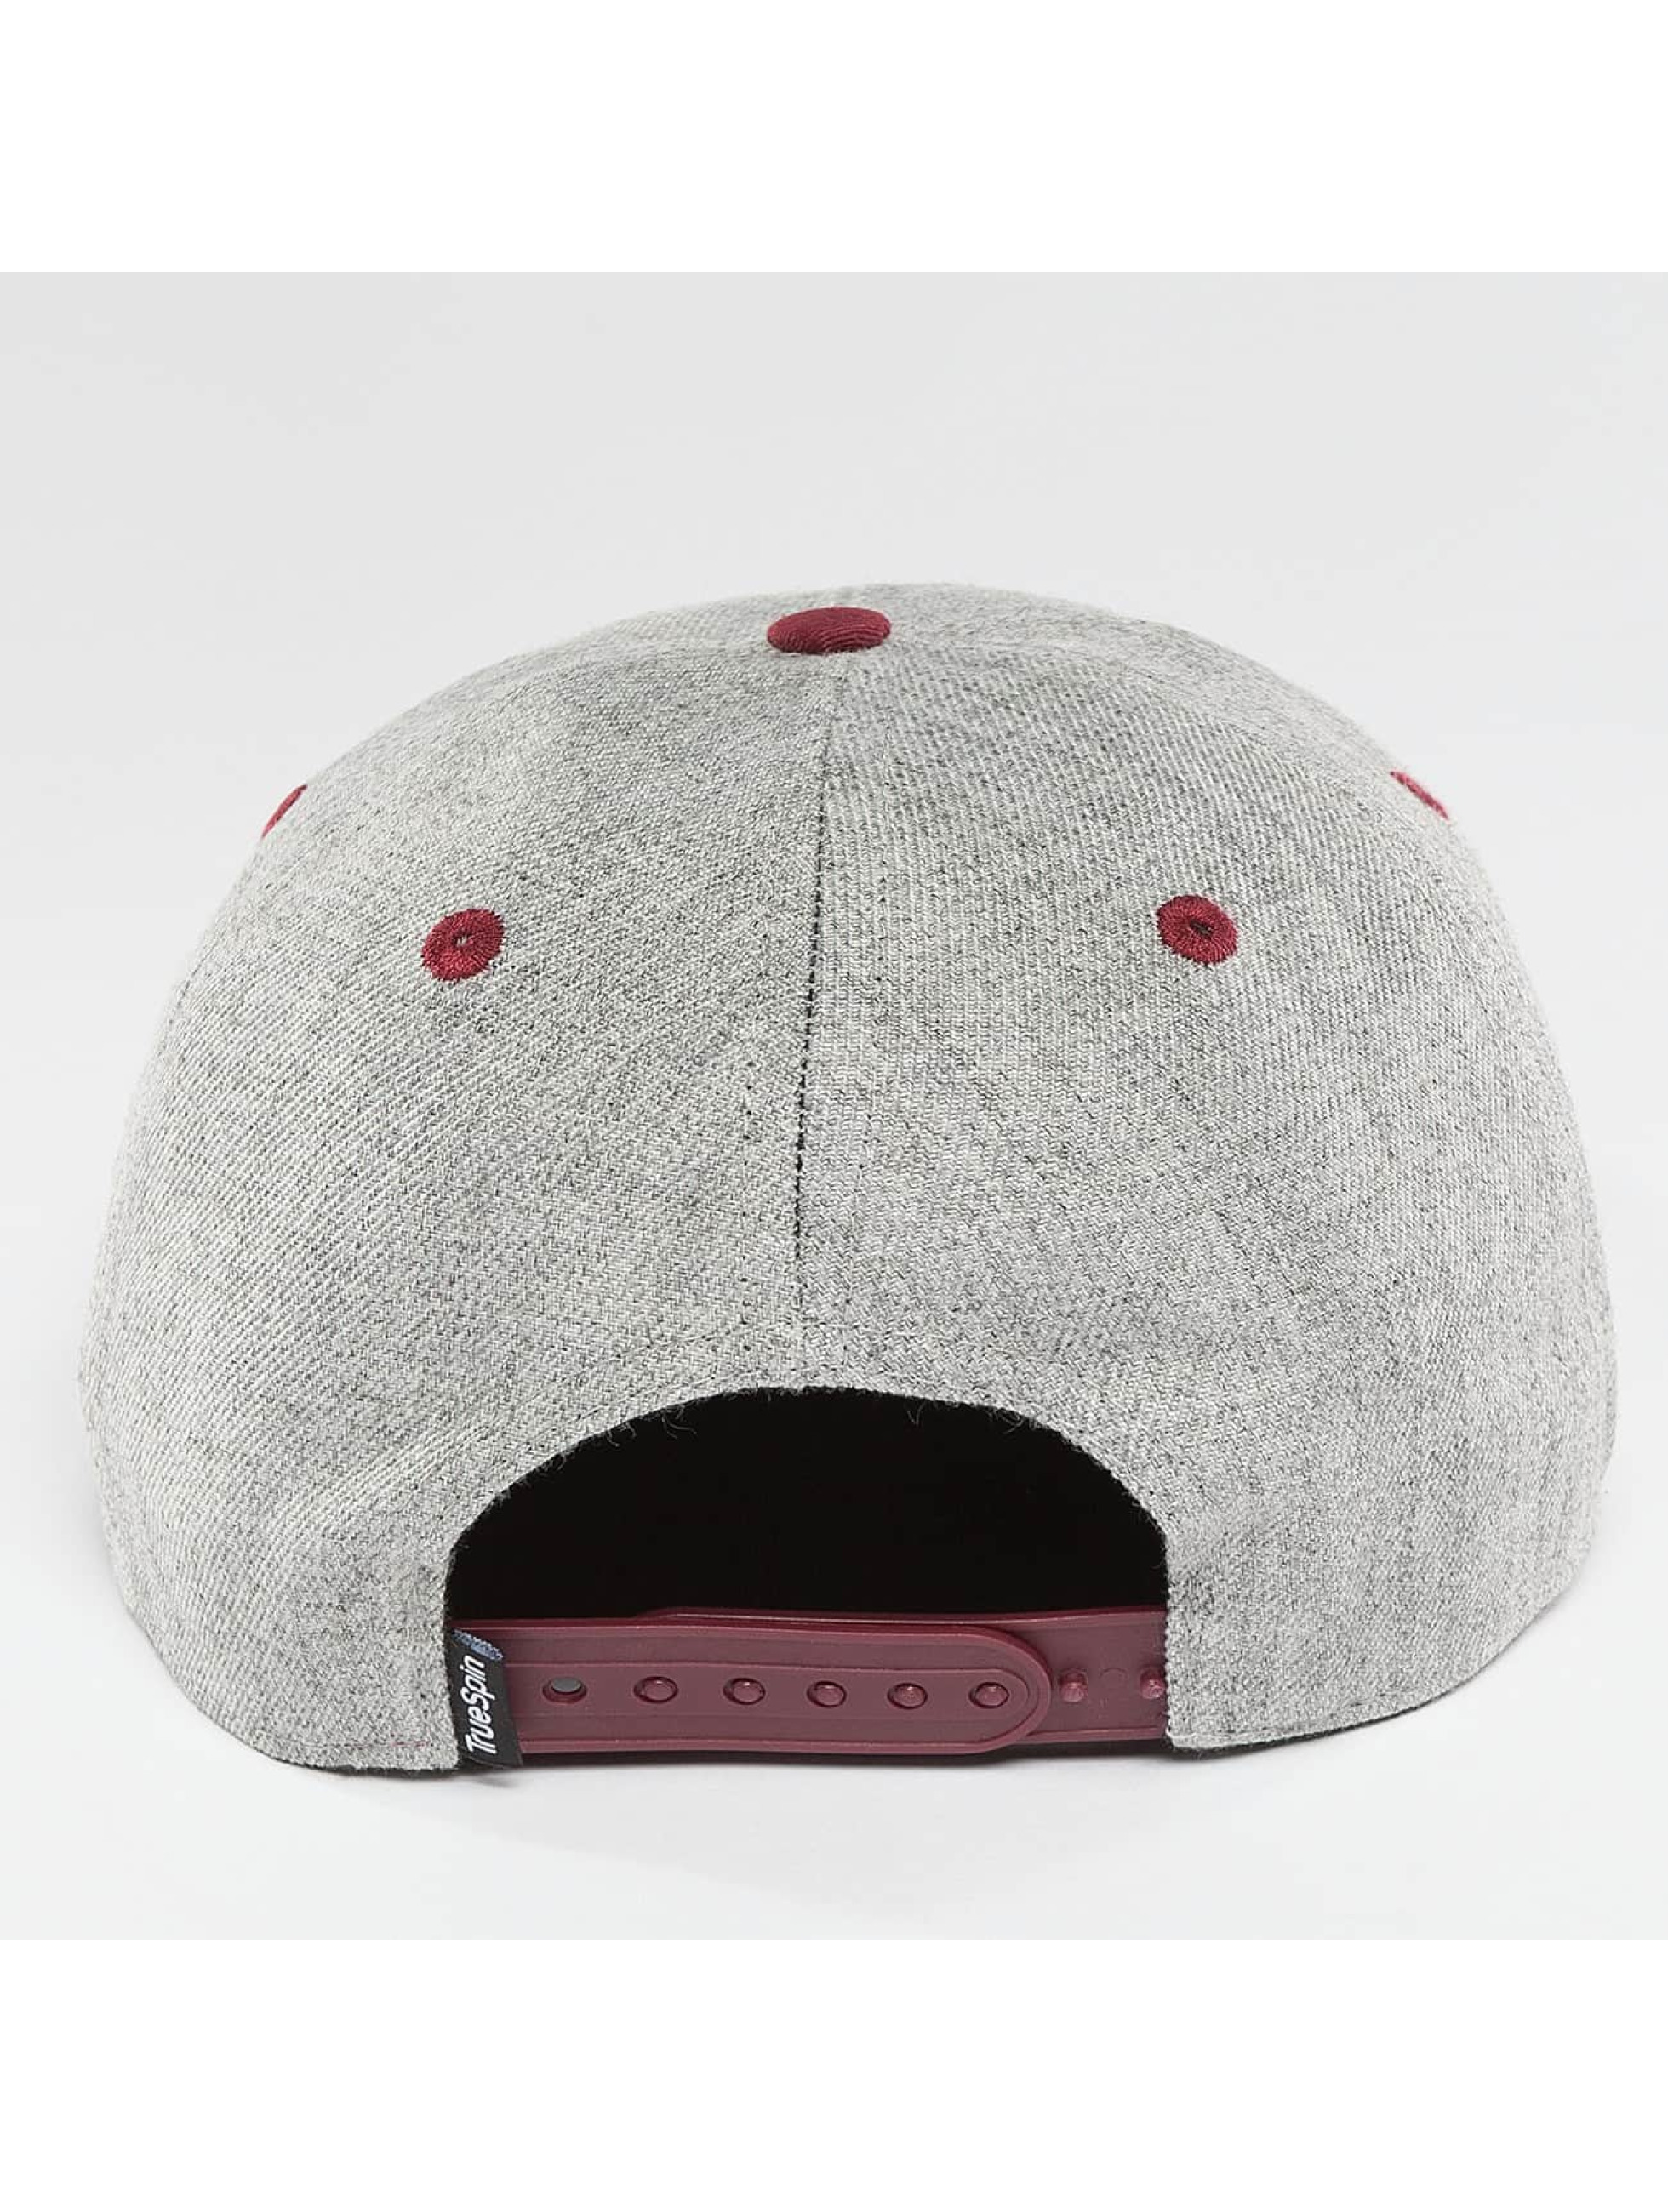 TrueSpin Casquette Snapback & Strapback 4 Letters Busy gris